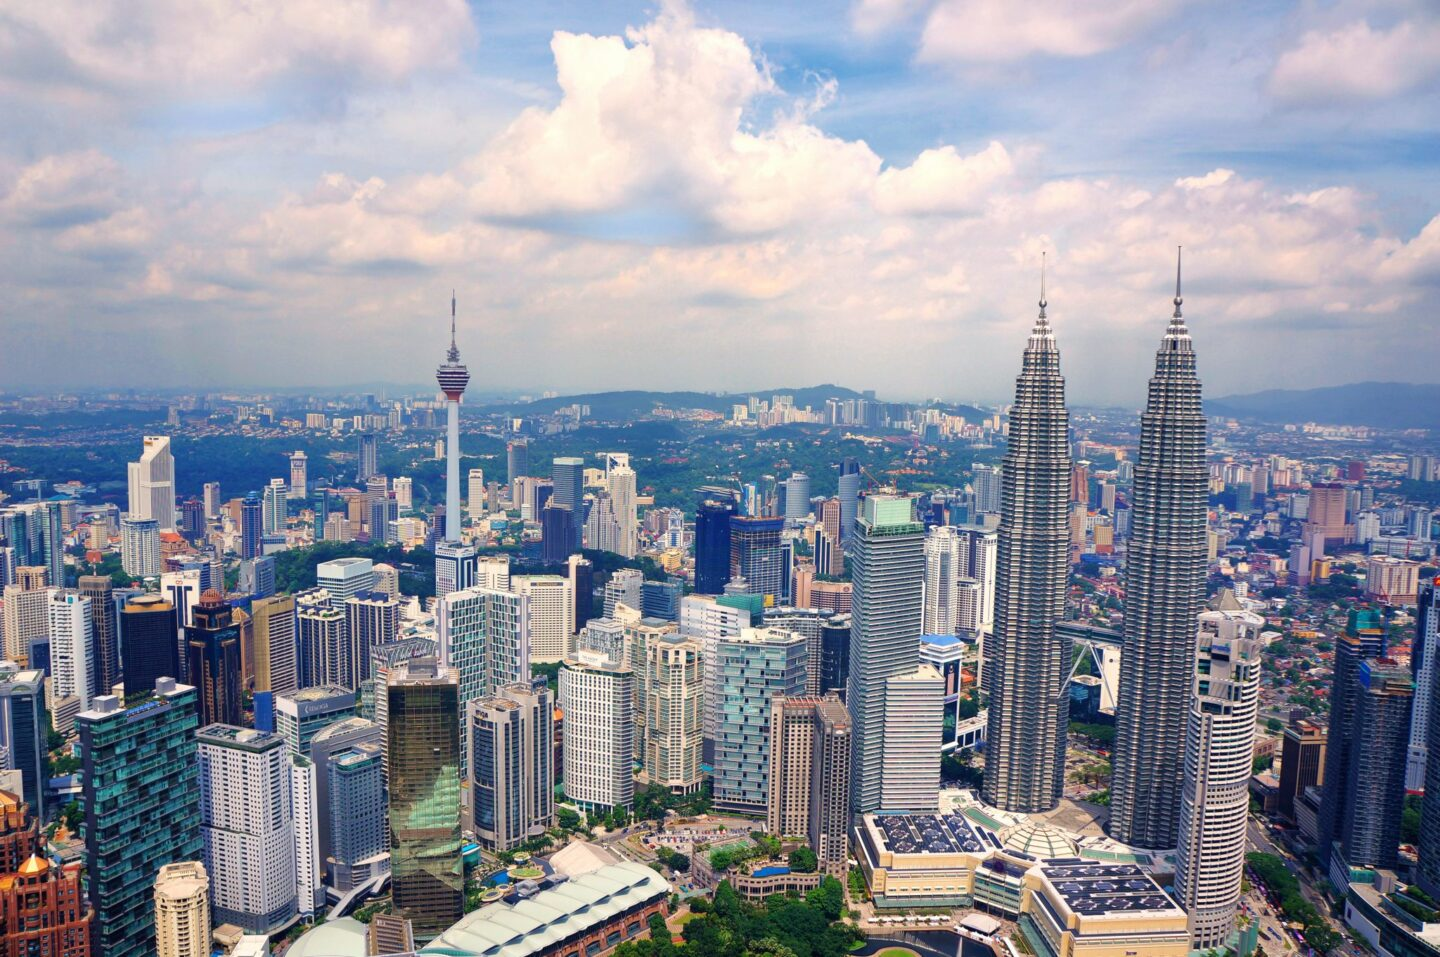 Malaysia: 10 Awesome Reasons Why Visiting Is A No-Brainer